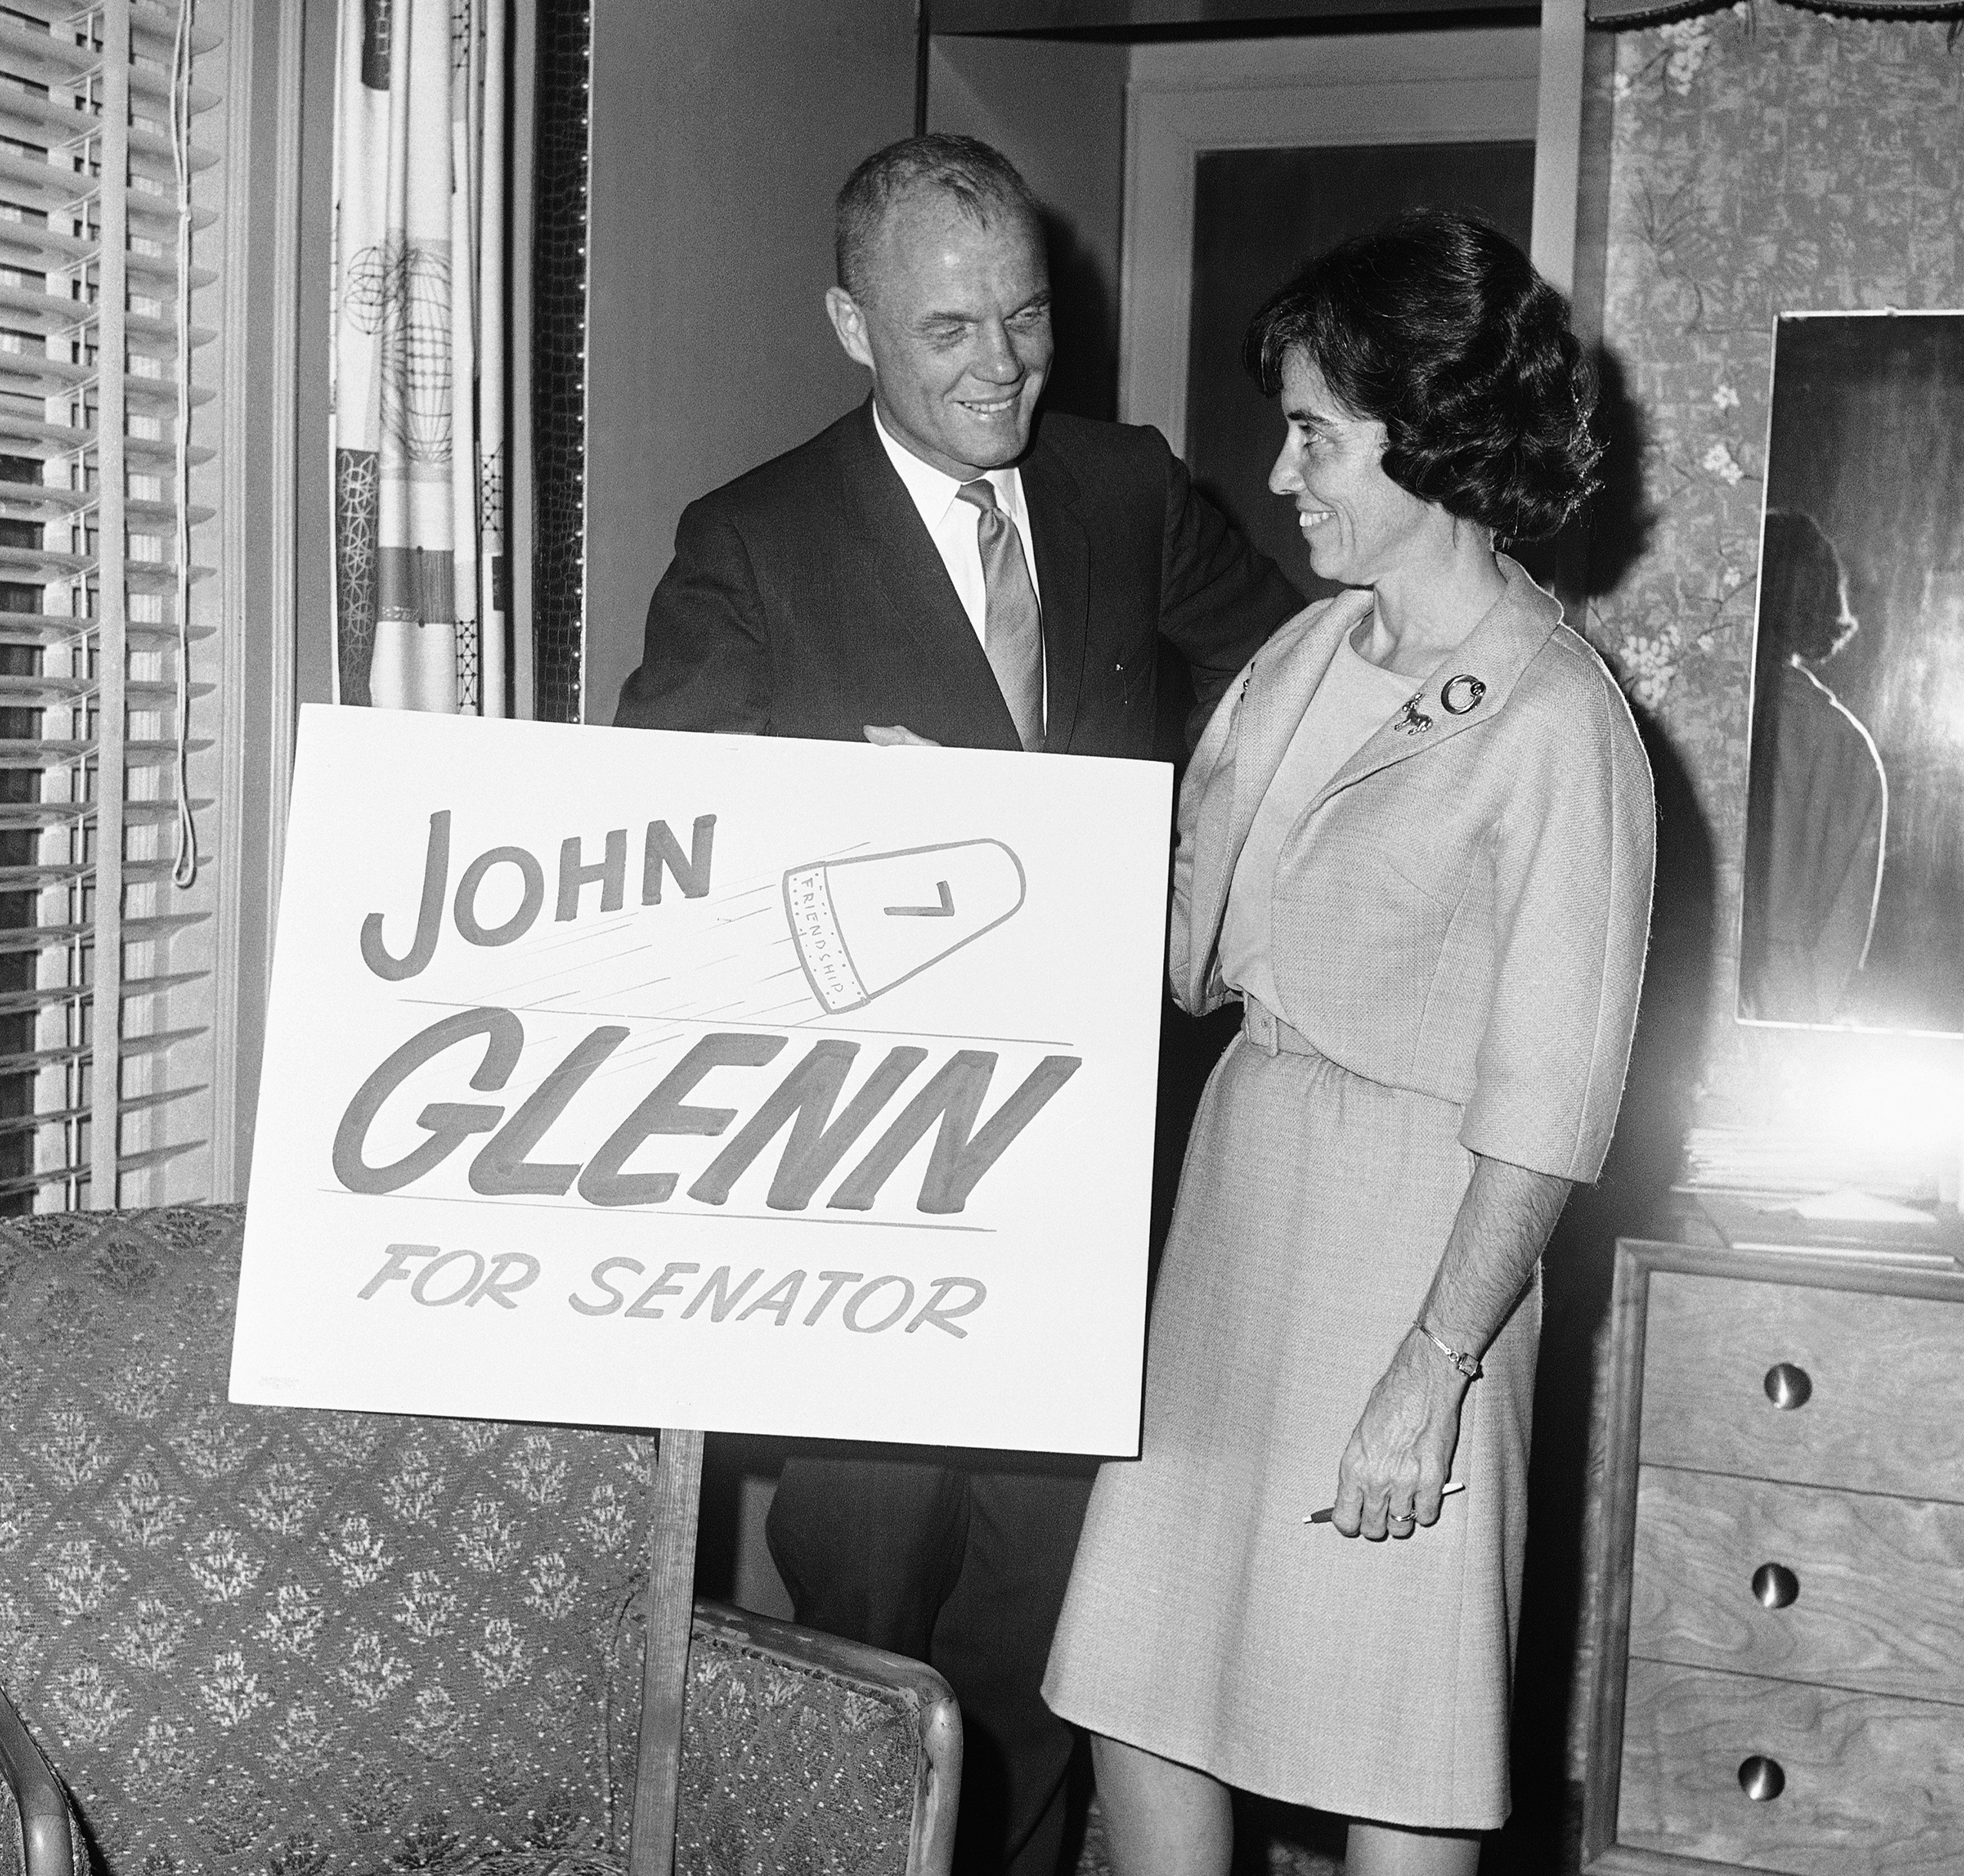 <b>A Bid for the Senate</b> Glenn entered politics in 1964 as a Democrat, campaigning for one of Ohio's Senate seats. A fall in the bathtub that ironically injured his exhaustively tested inner ear would cause him to scrub the campaign.